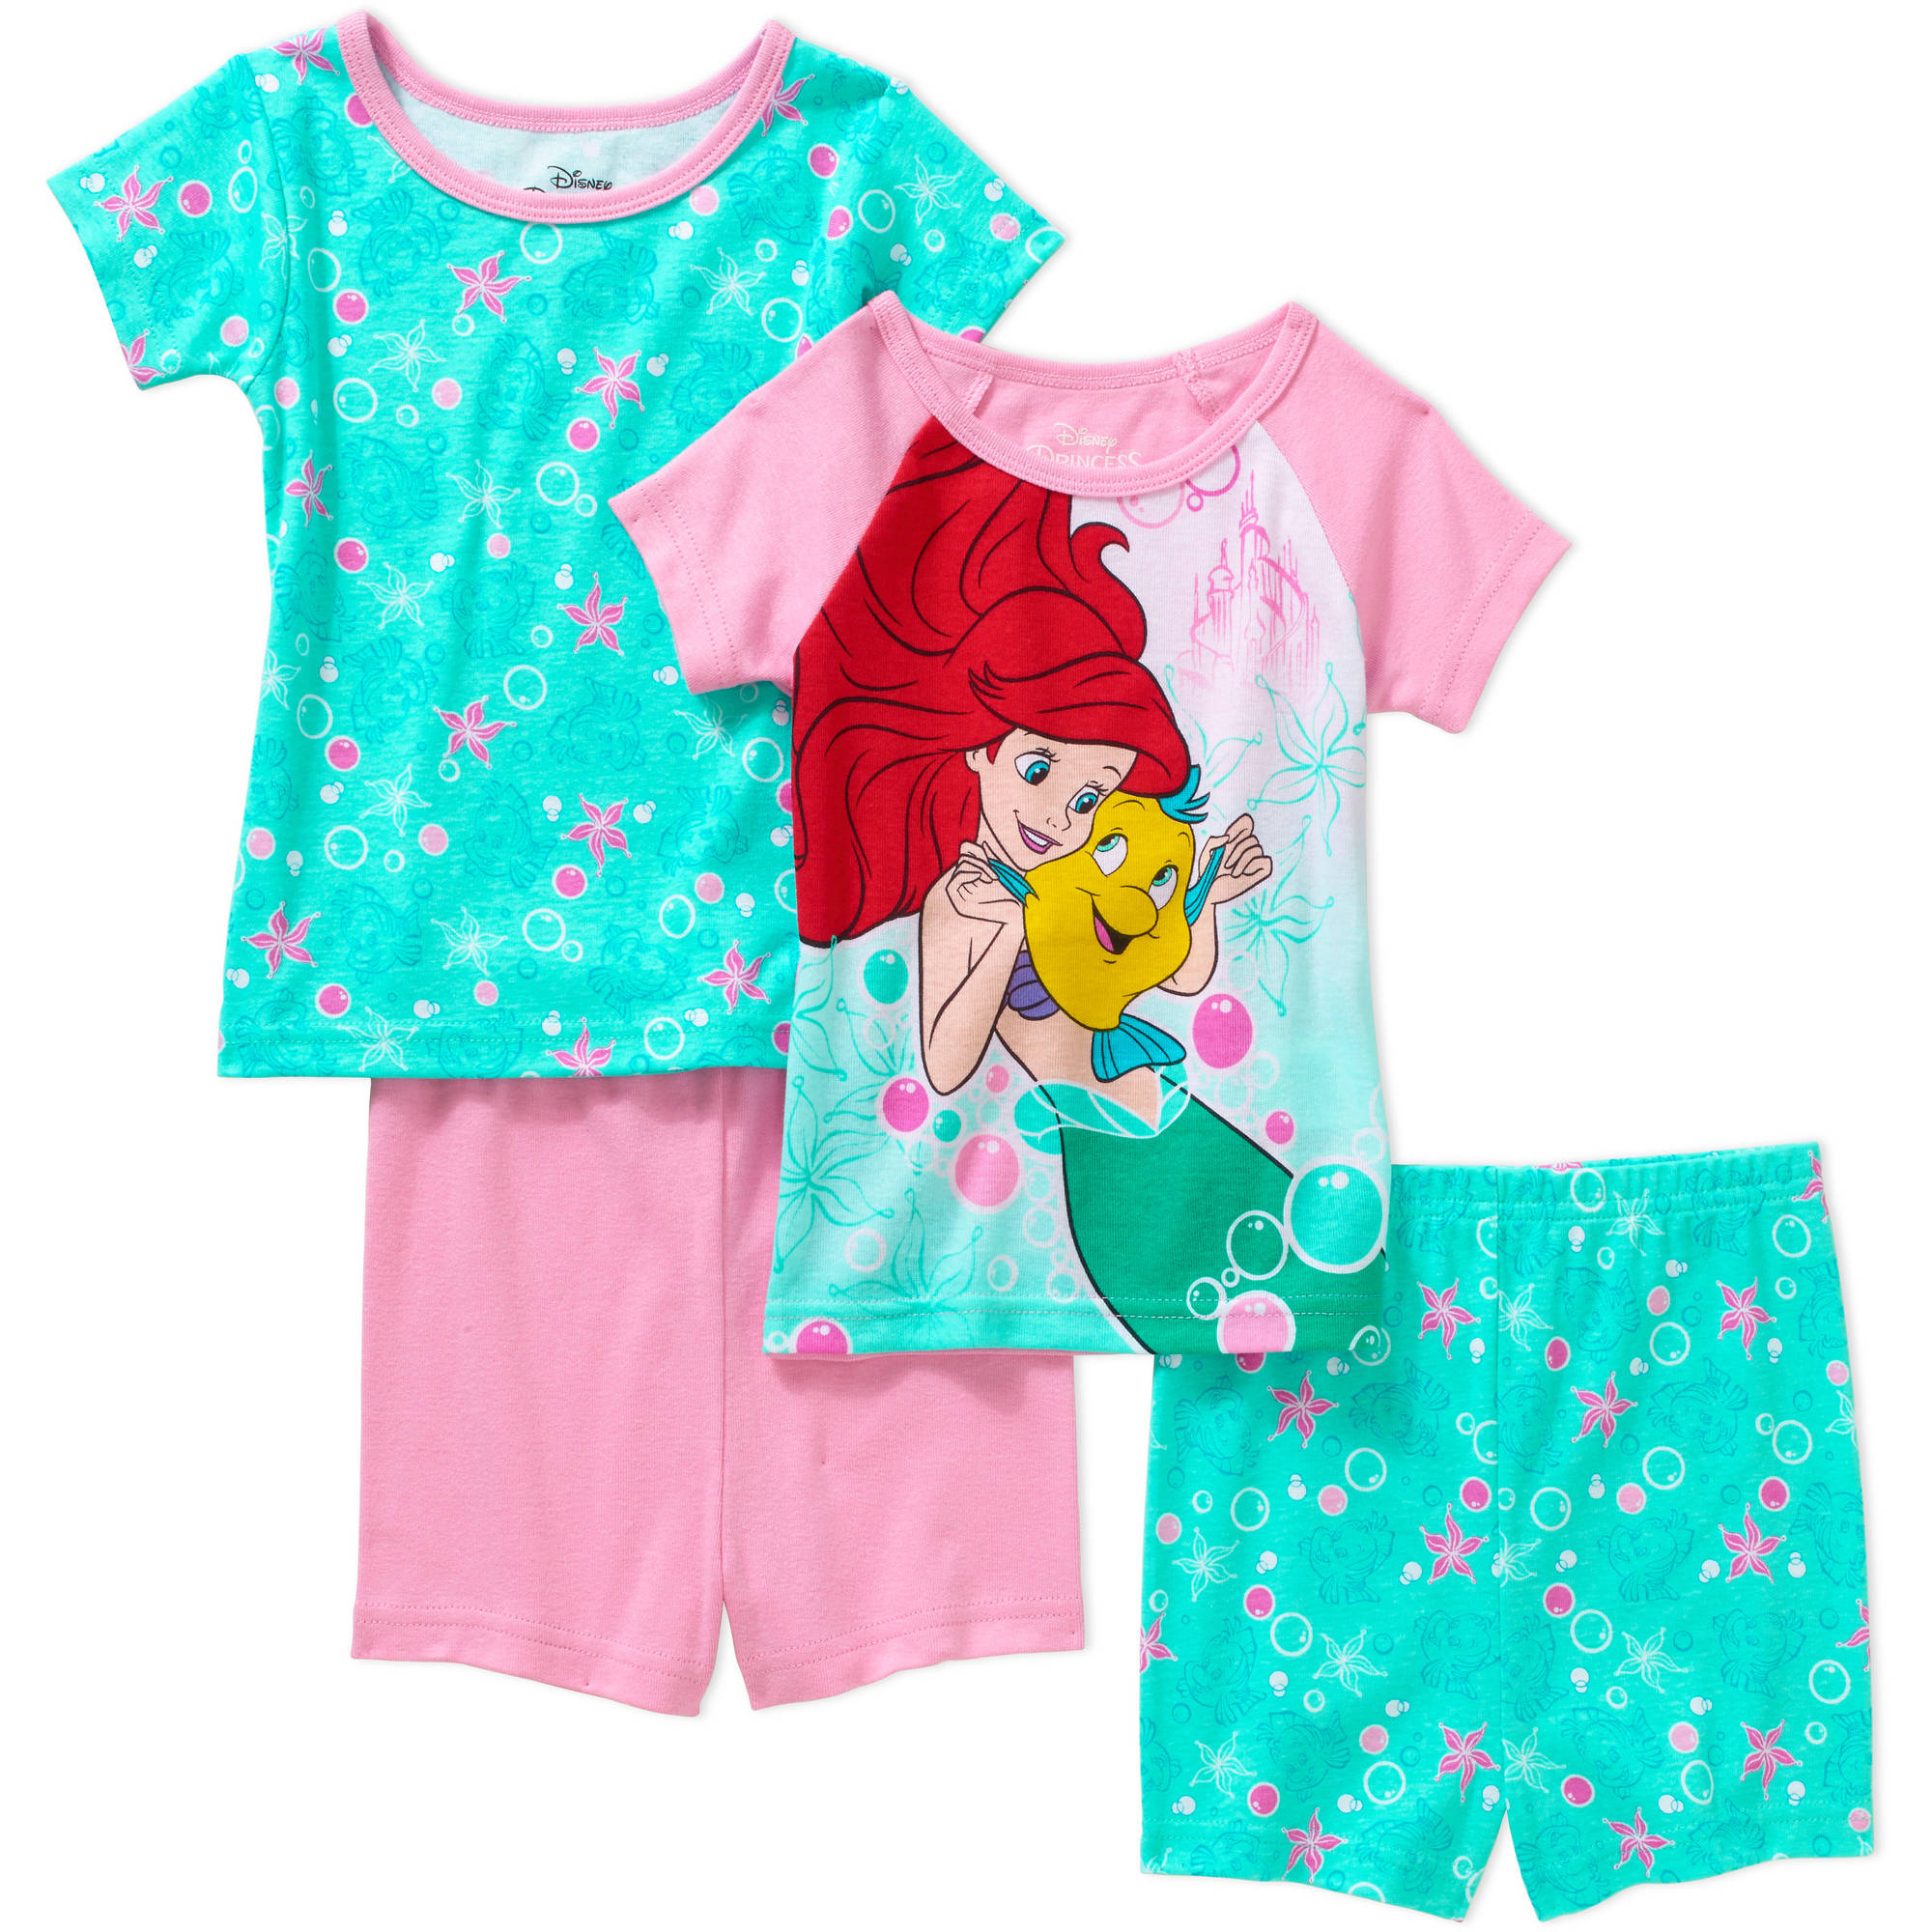 Disney Little Mermaid Ariel Toddler Girl Cotton Tight Fit Short Sleeve Sleep Set, 4-Pieces